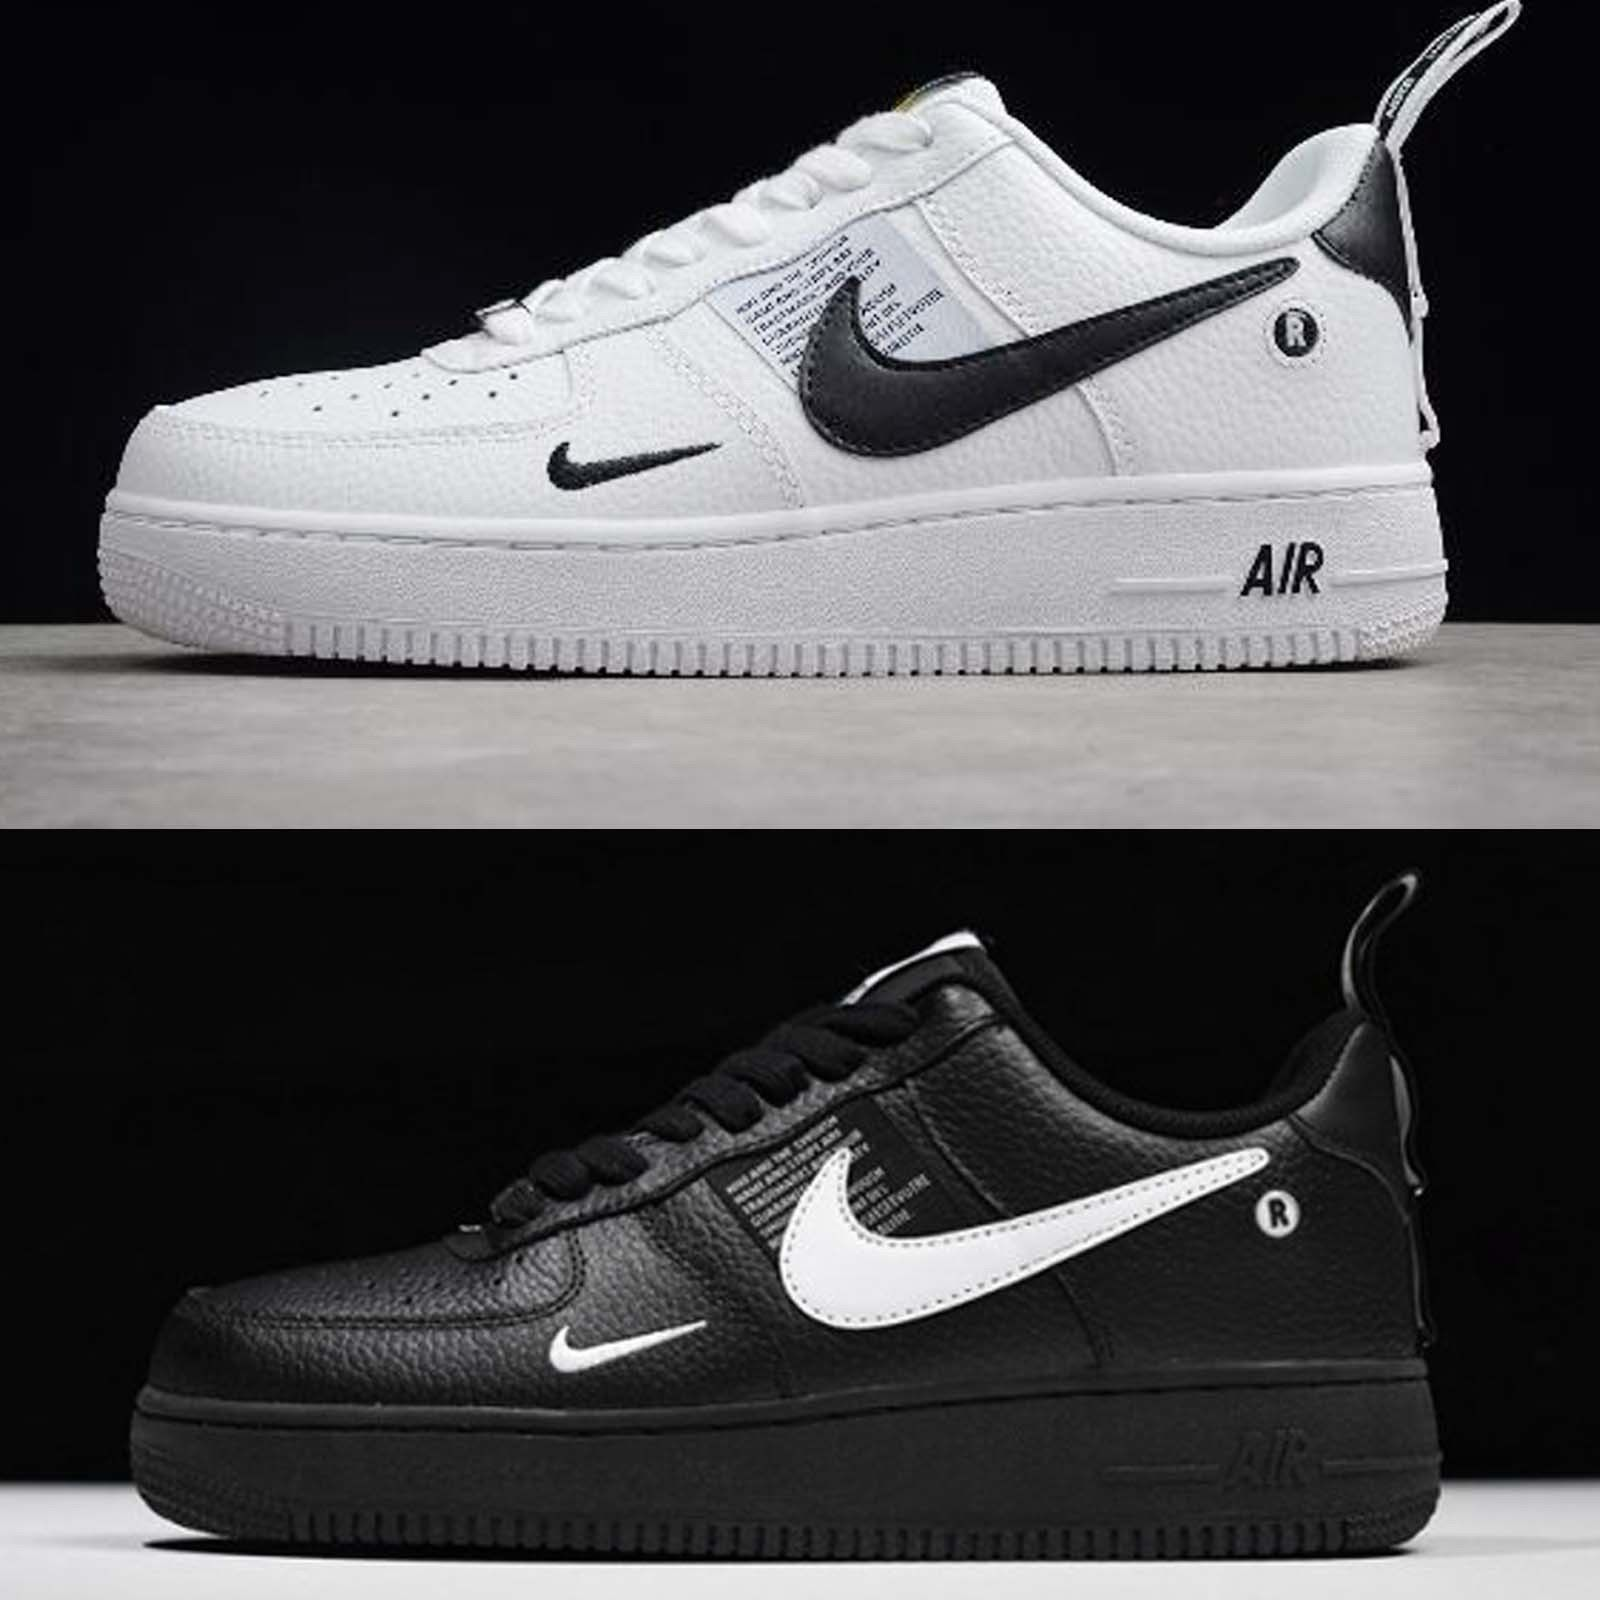 new arrival a225c 8a4d7 Nike Air Force 1 07 LV8 utility back and white